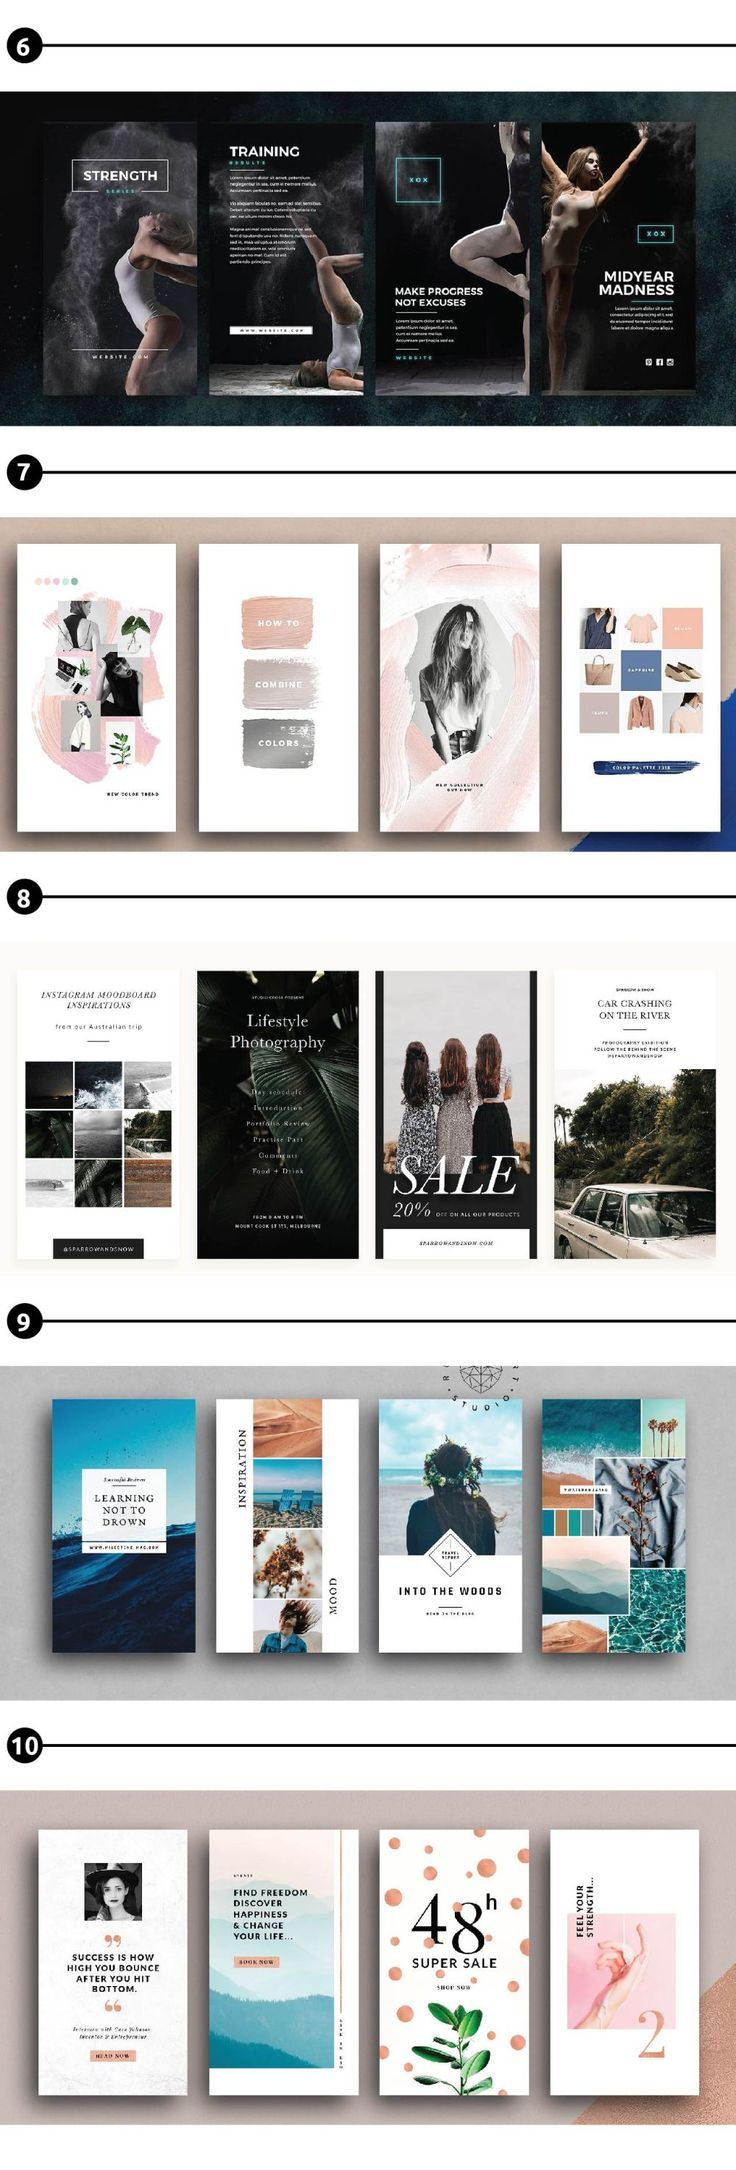 57 best General Graphic Design Inspiration images on Pinterest ...